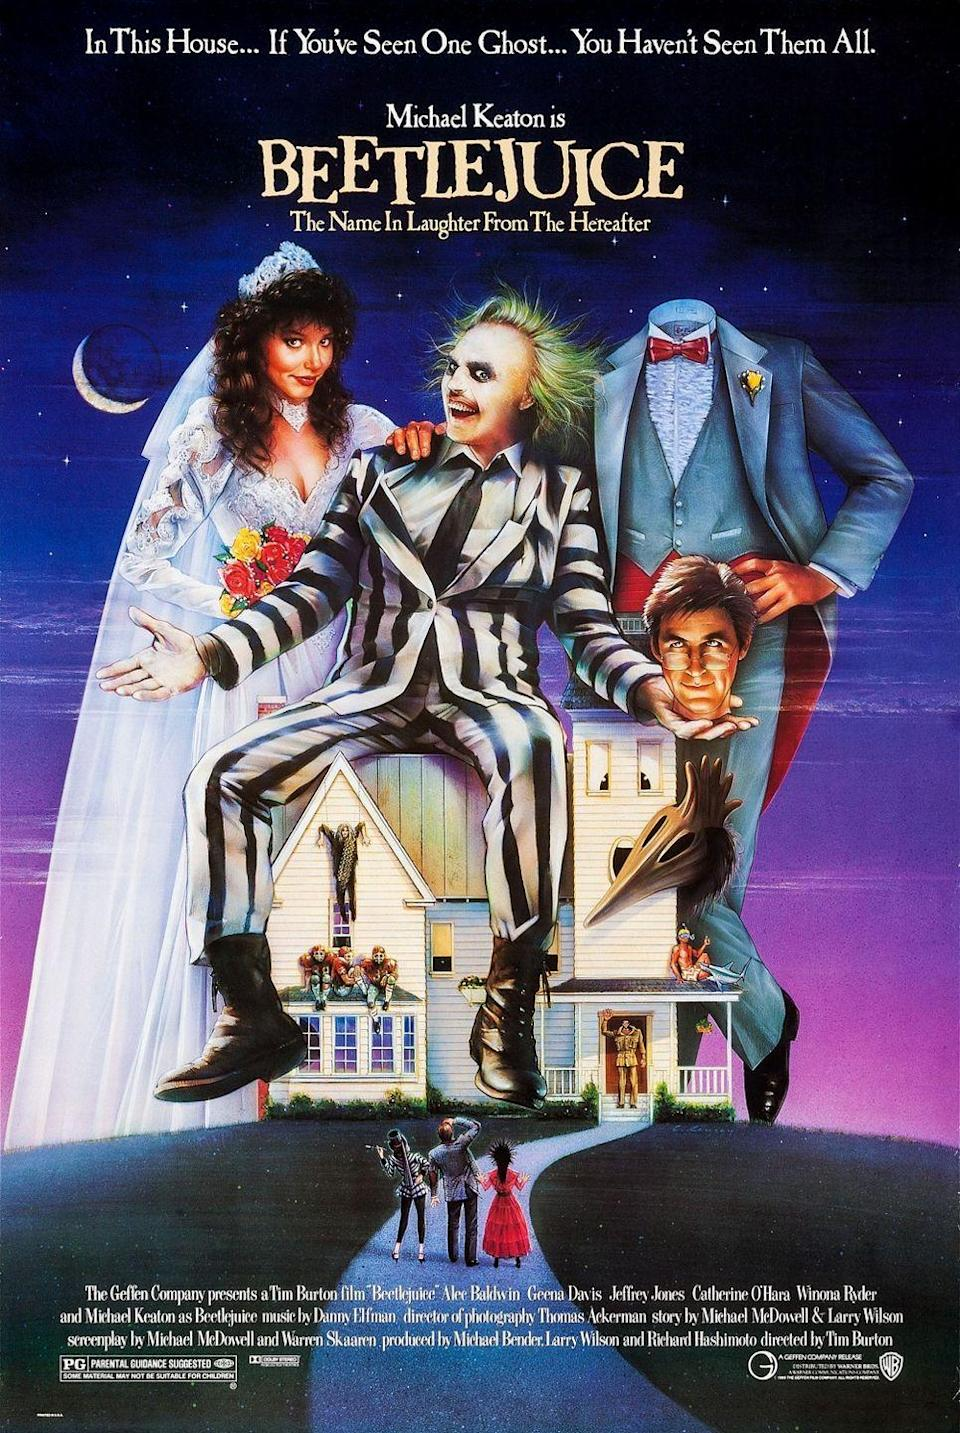 """<p>After dying in a car crash, Adam and Barbara Maitland learn they have to stay in their house for 150 years, which they're fine with, at least until their house is sold to the Deetz family, whom they take an immediate disliking toward. To remedy the situation, the Maitlands hire Beetle Juice to scare the Deetz away, but Beetle Juice gets distracted when he starts wooing the Deetz daughter in order to marry her and return to the land of the living. </p><p><a class=""""link rapid-noclick-resp"""" href=""""https://www.amazon.com/Michael-Keaton/dp/B0091W0ILY/?tag=syn-yahoo-20&ascsubtag=%5Bartid%7C10065.g.29354714%5Bsrc%7Cyahoo-us"""" rel=""""nofollow noopener"""" target=""""_blank"""" data-ylk=""""slk:Watch Now"""">Watch Now</a></p>"""